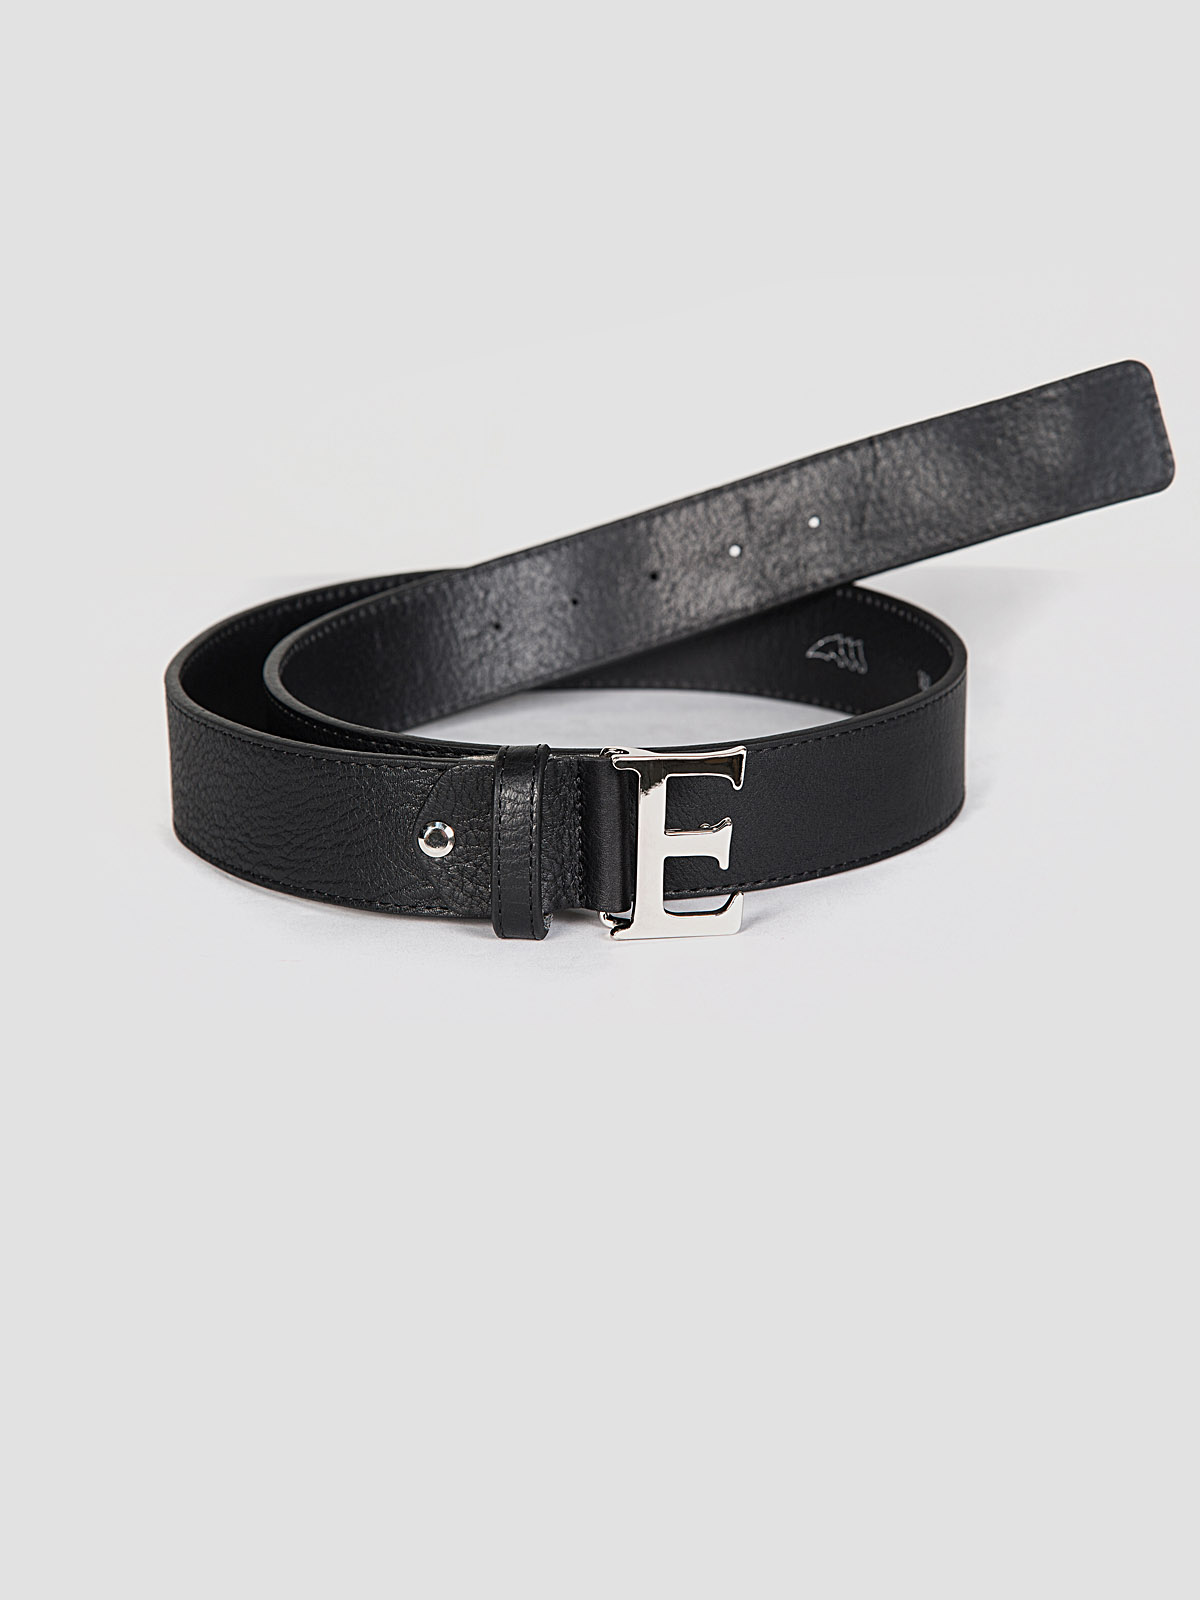 Equiline Betta leather belt in black